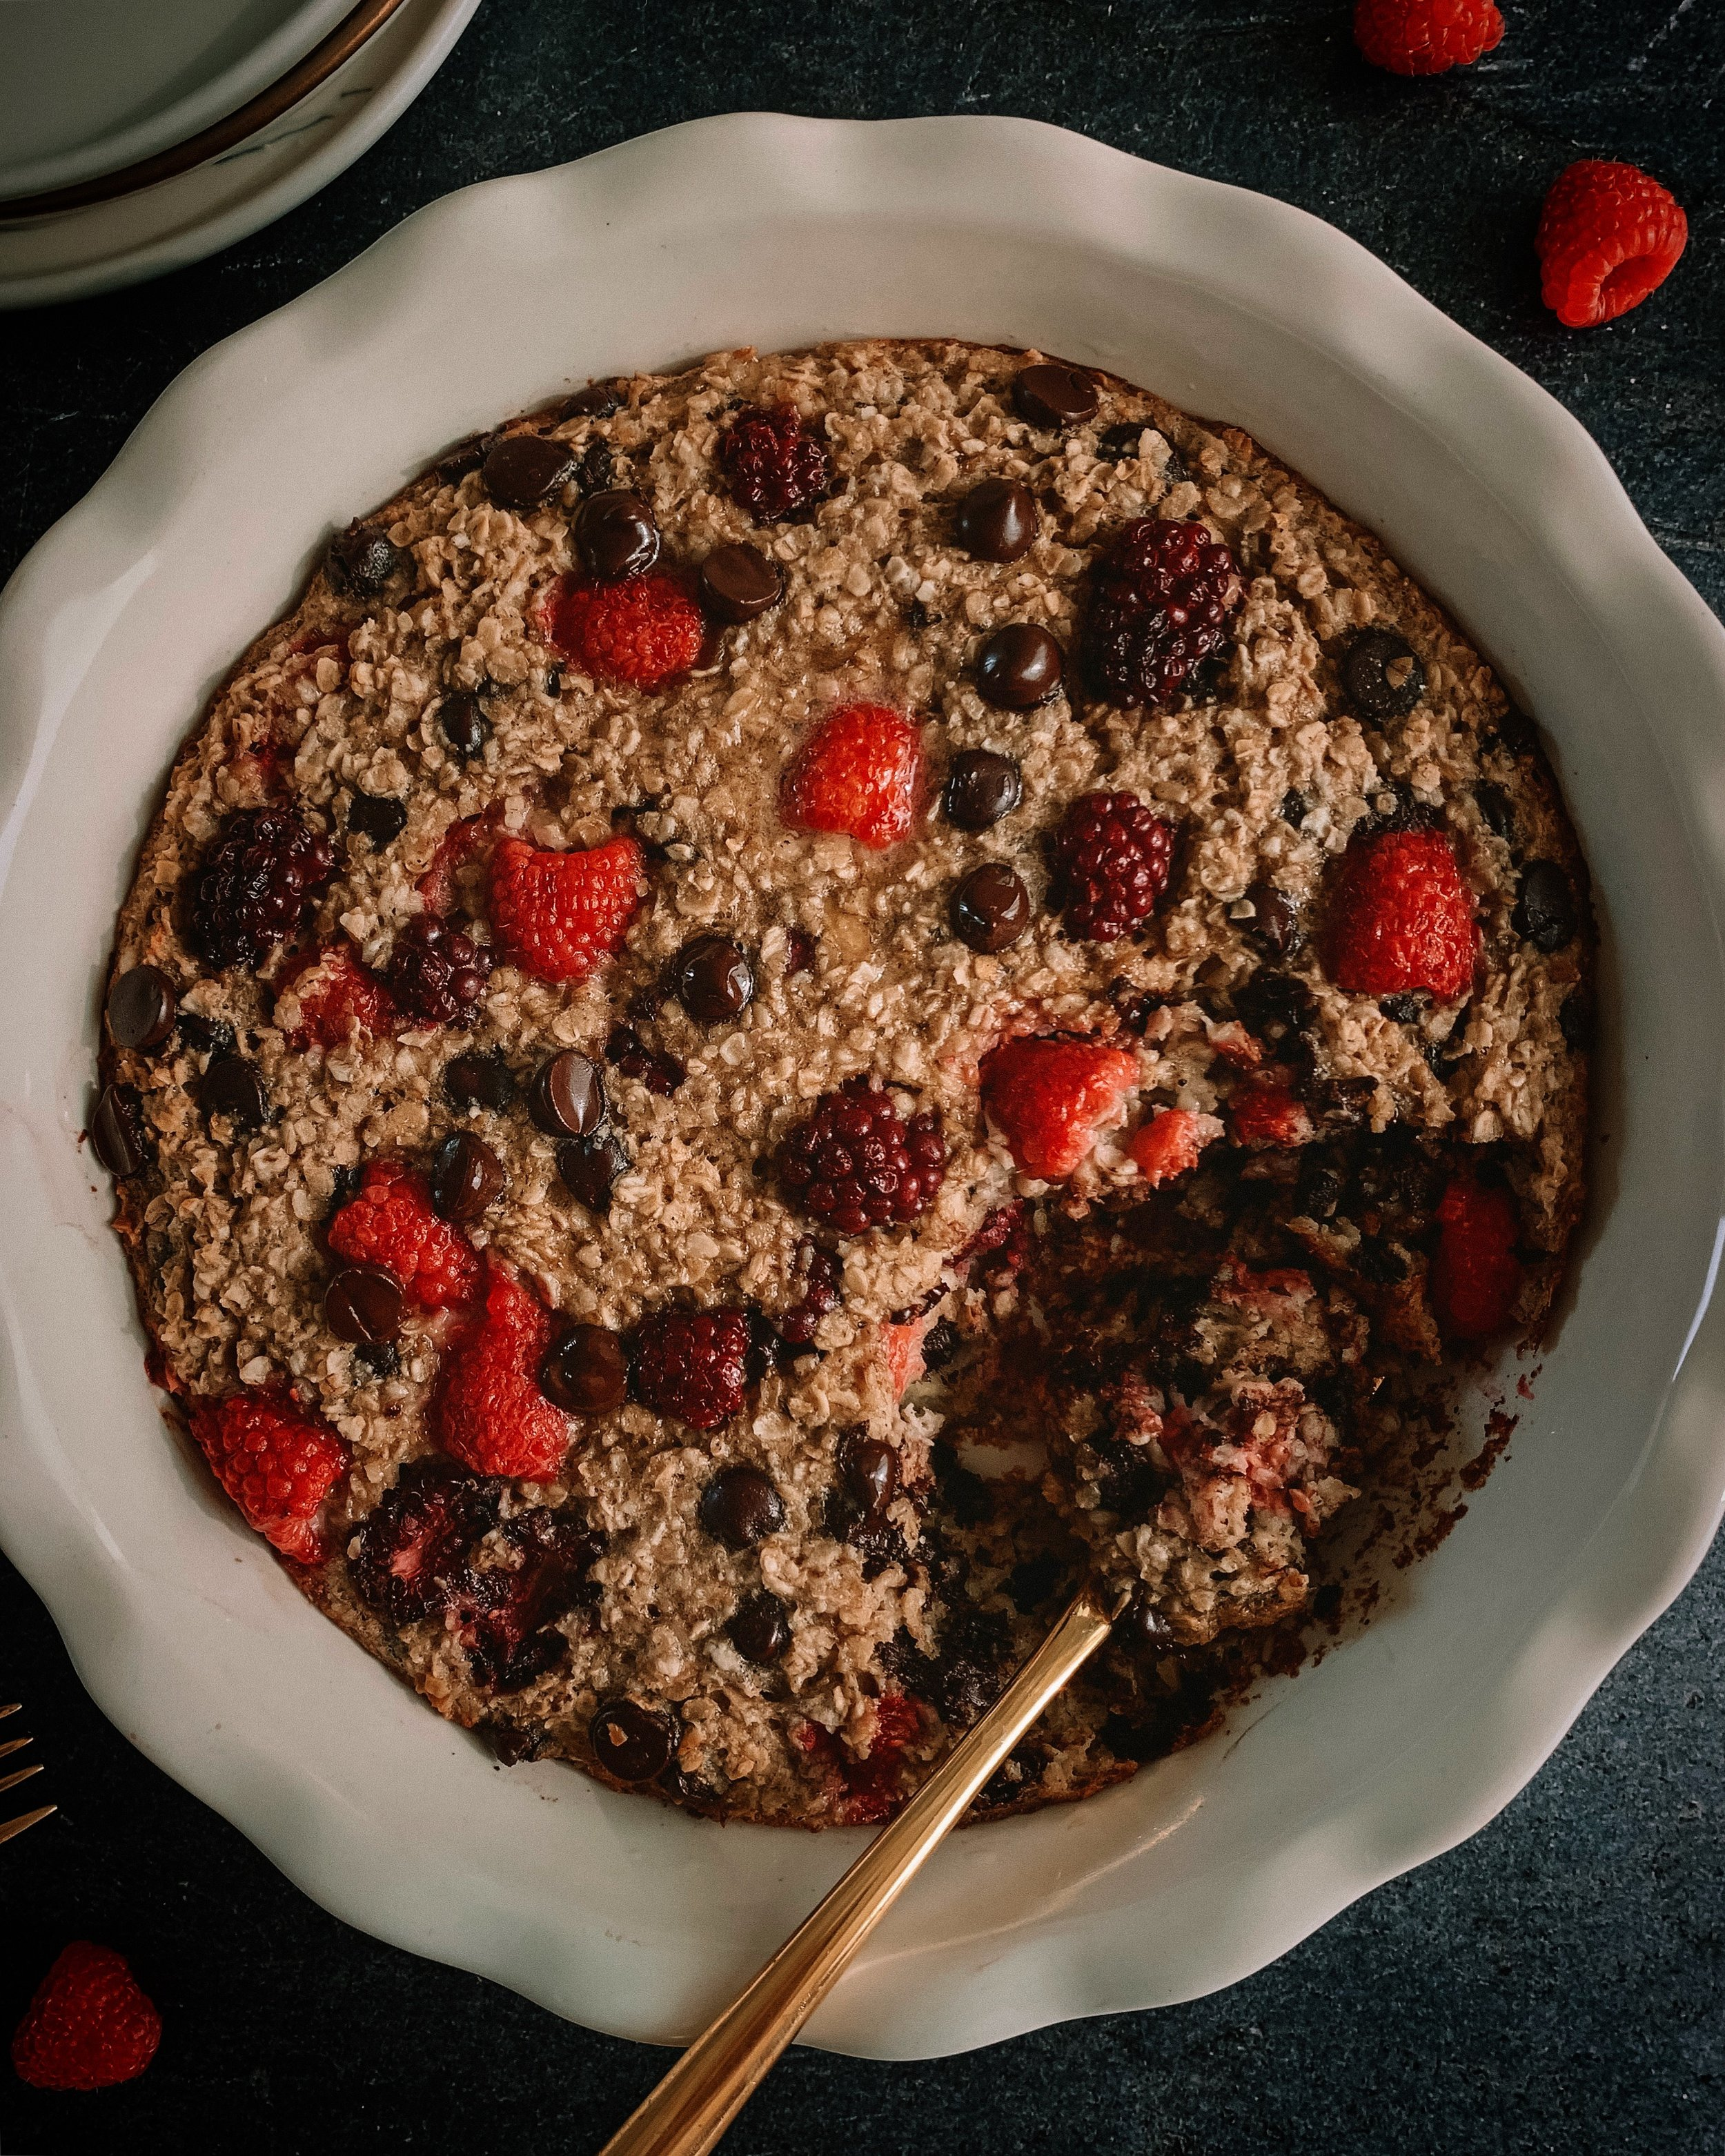 MIXED BERRY CHOCOLATE CHIP OATMEAL BAKE - INGREDIENTS2 bananas 1 egg1 1/2 cups gluten free rolled oats1 cup almond milk1/2 cup dairy free chocolate chips3/4 cup mixed berries (I used razzies and blackberries)2 tb melted coconut oil (or butter)1 tsp cinnamon1/4 nutmeg1 tsp vanilla extract2 tsp baking powder